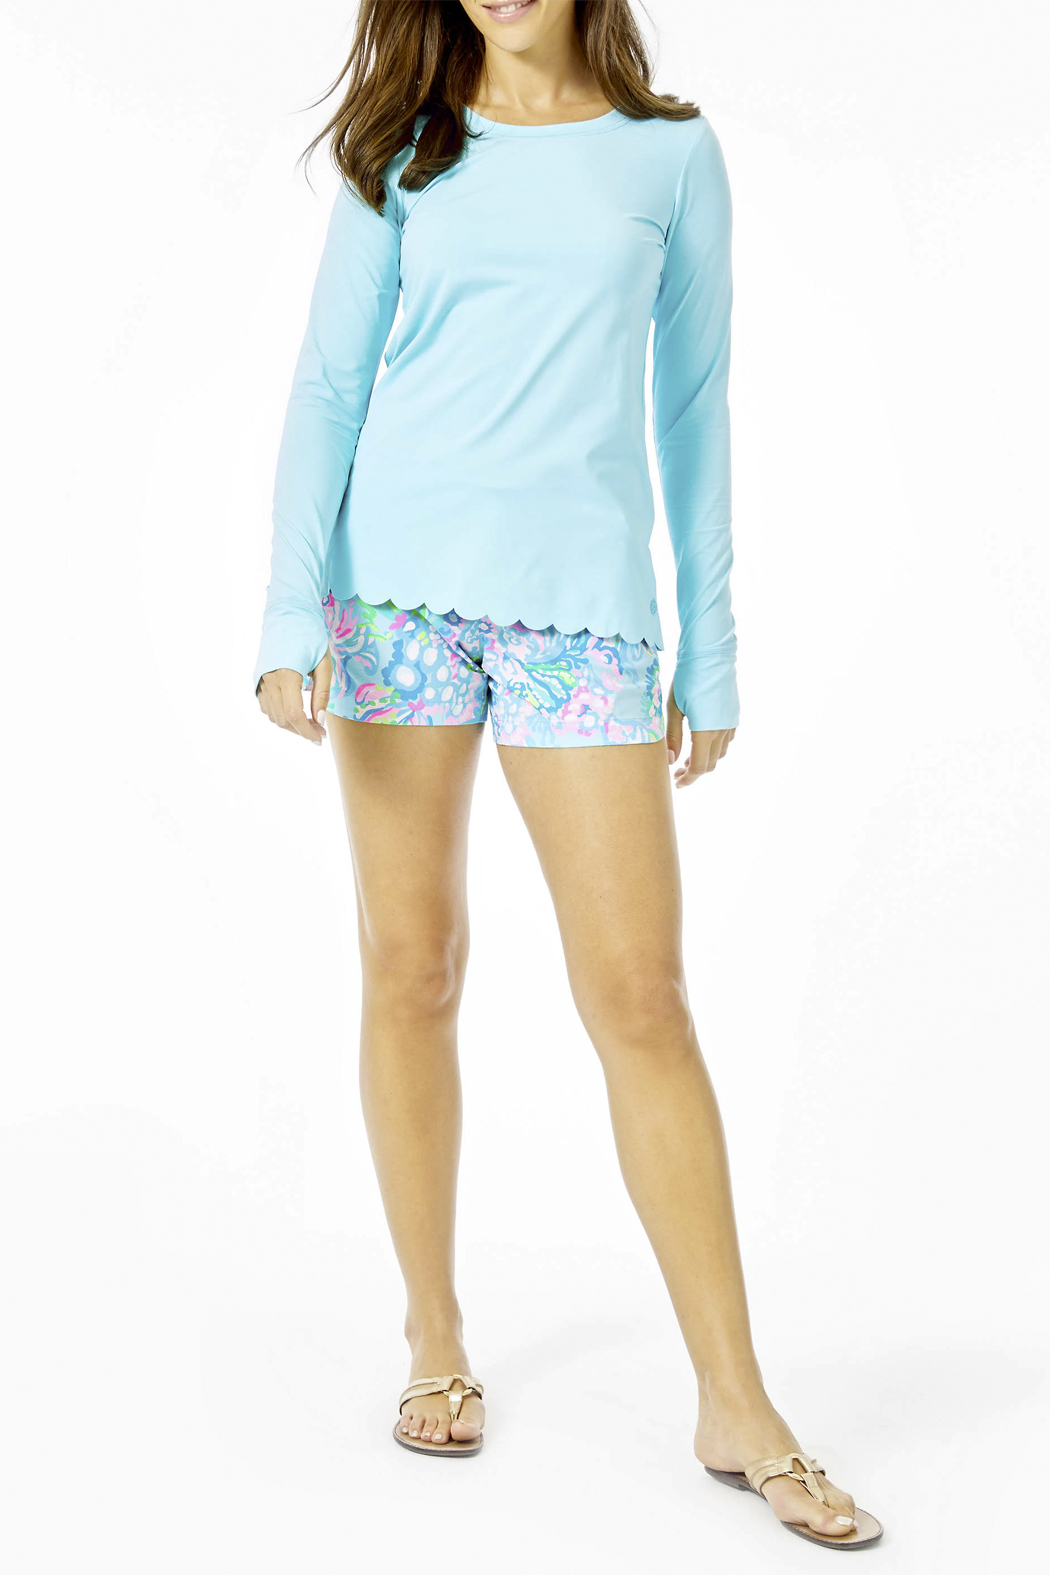 Lilly Pulitzer Renay Scallop Sunguard Luxletic UPF 50+ - Side Cropped Image